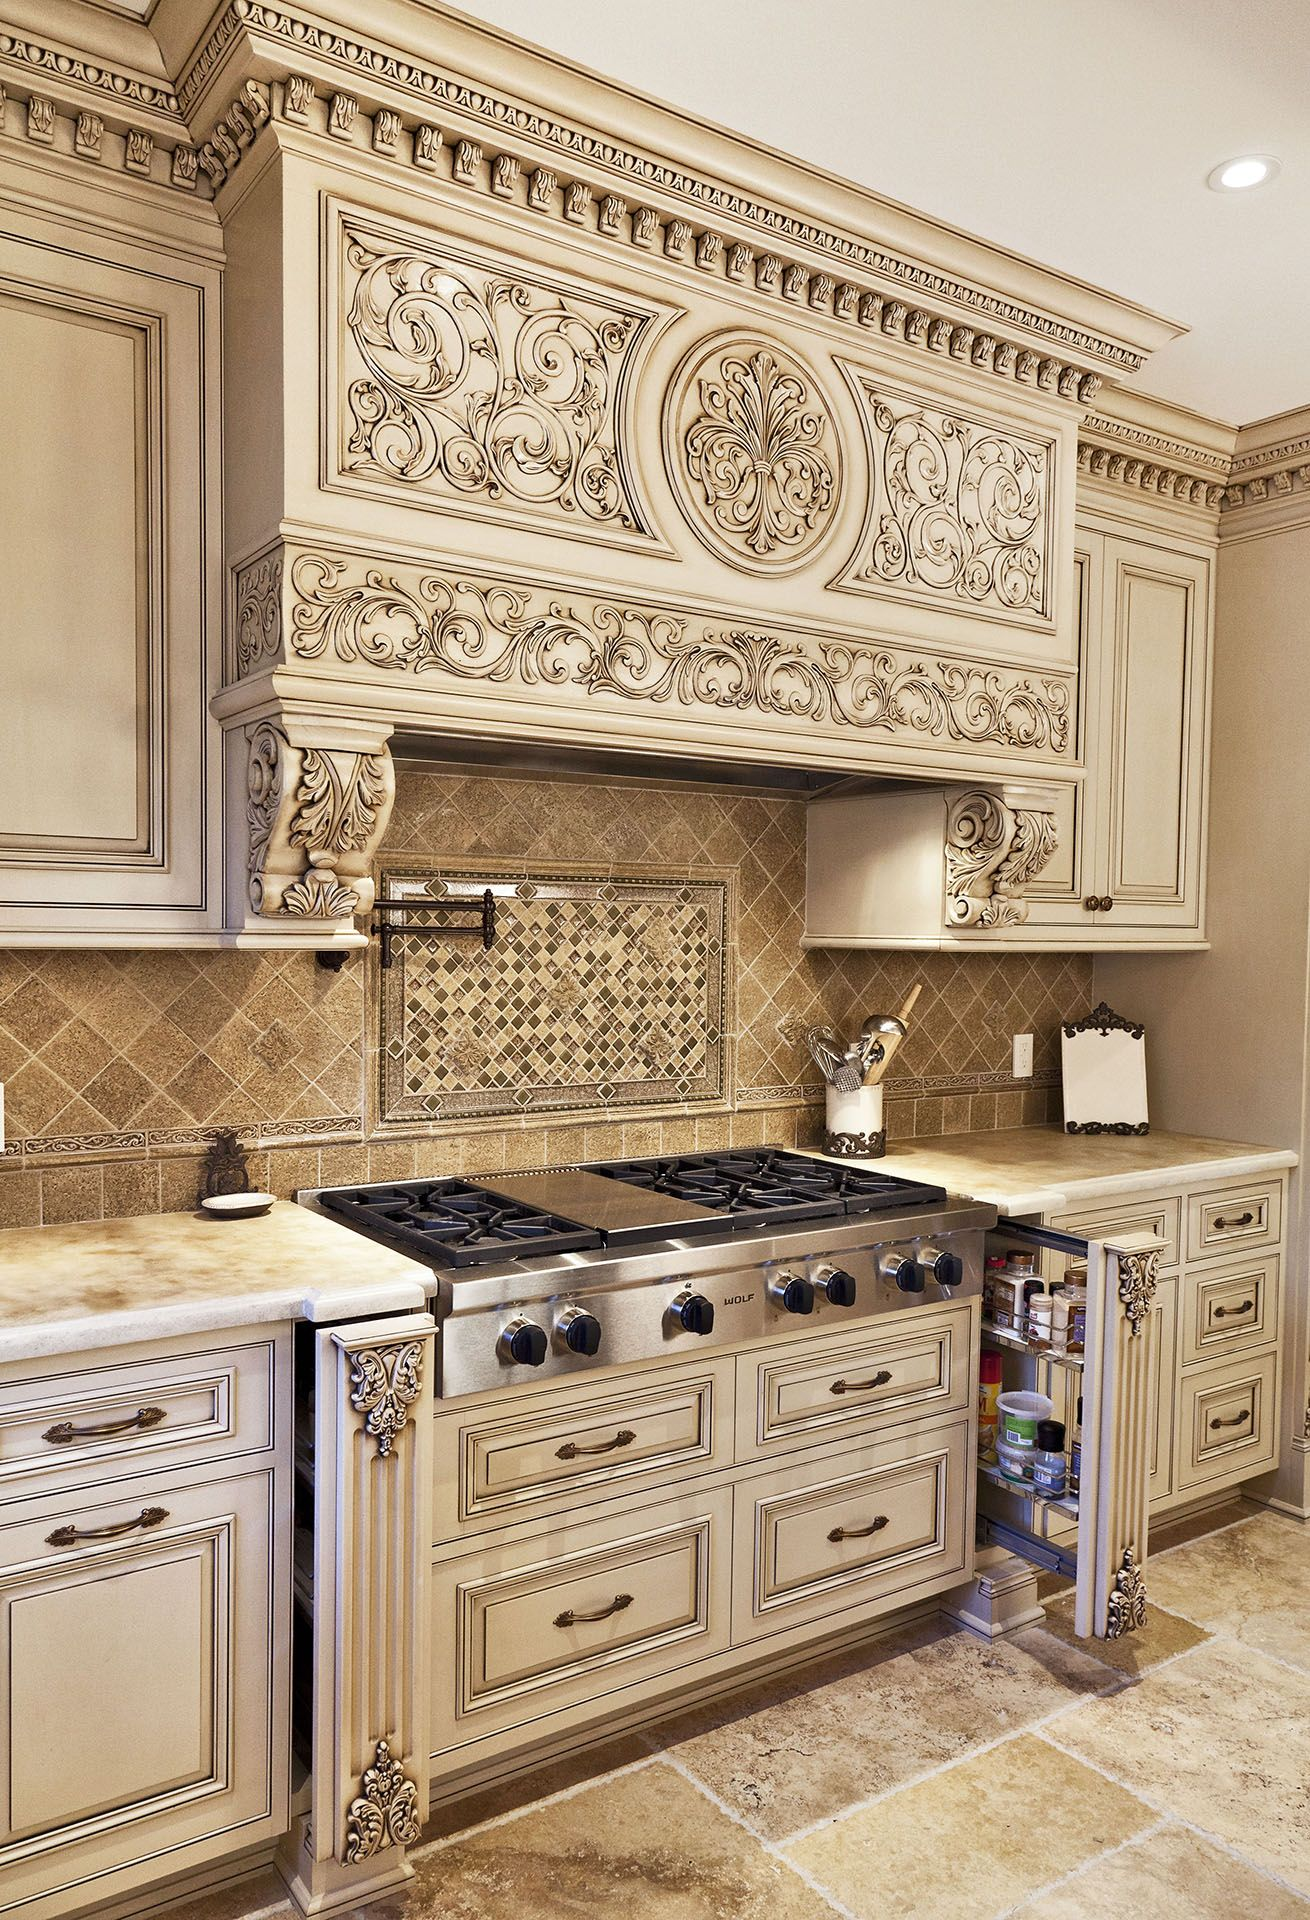 Arredamento Shabby Toscana pin by marcene plyler on french door oven | tuscan kitchen